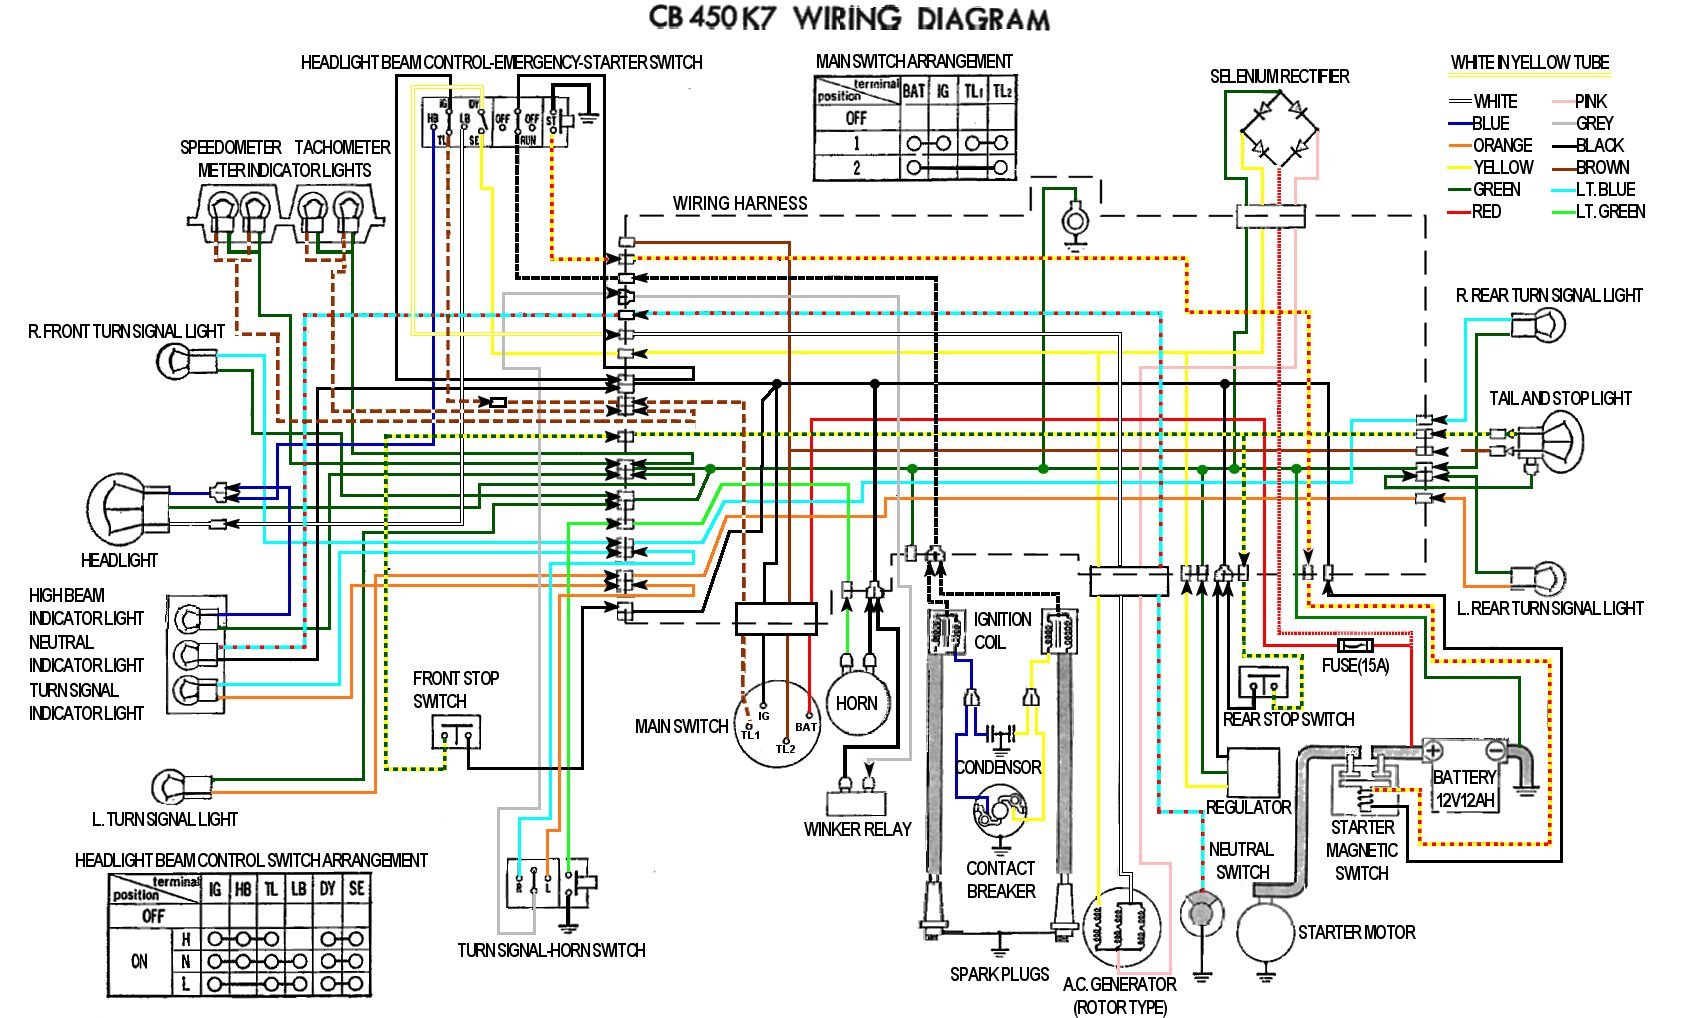 Cb color wiring diagram now corrected